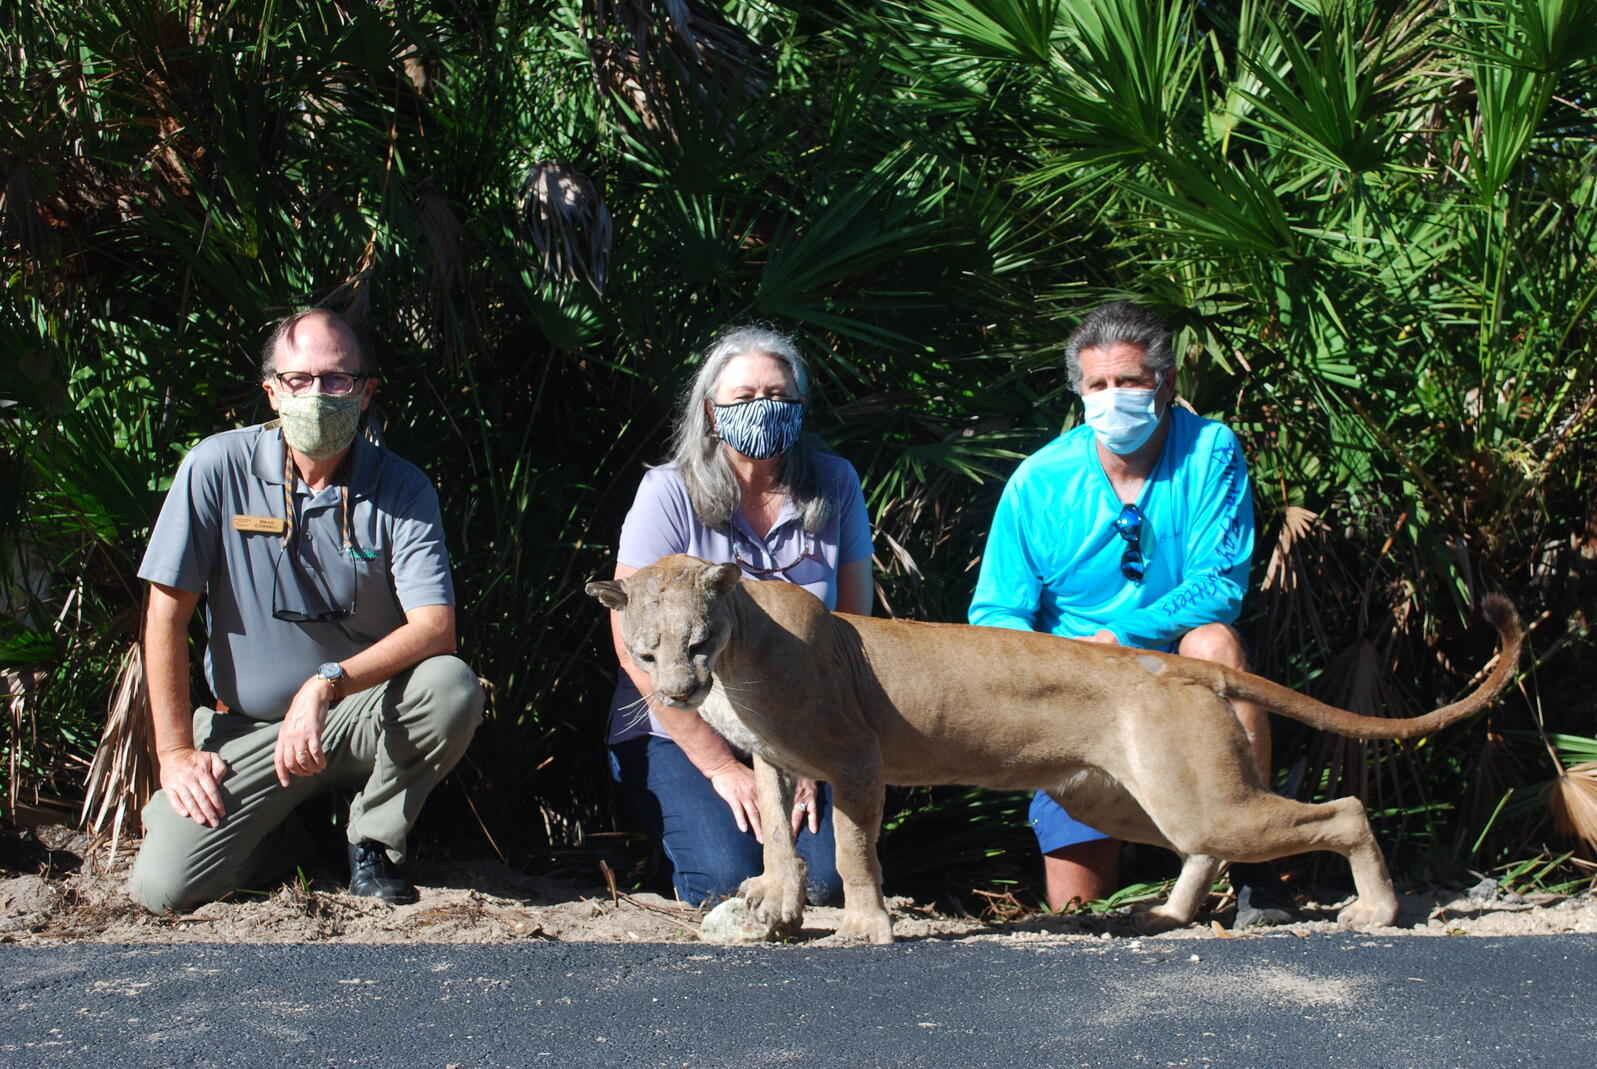 People with mounted Florida Panther